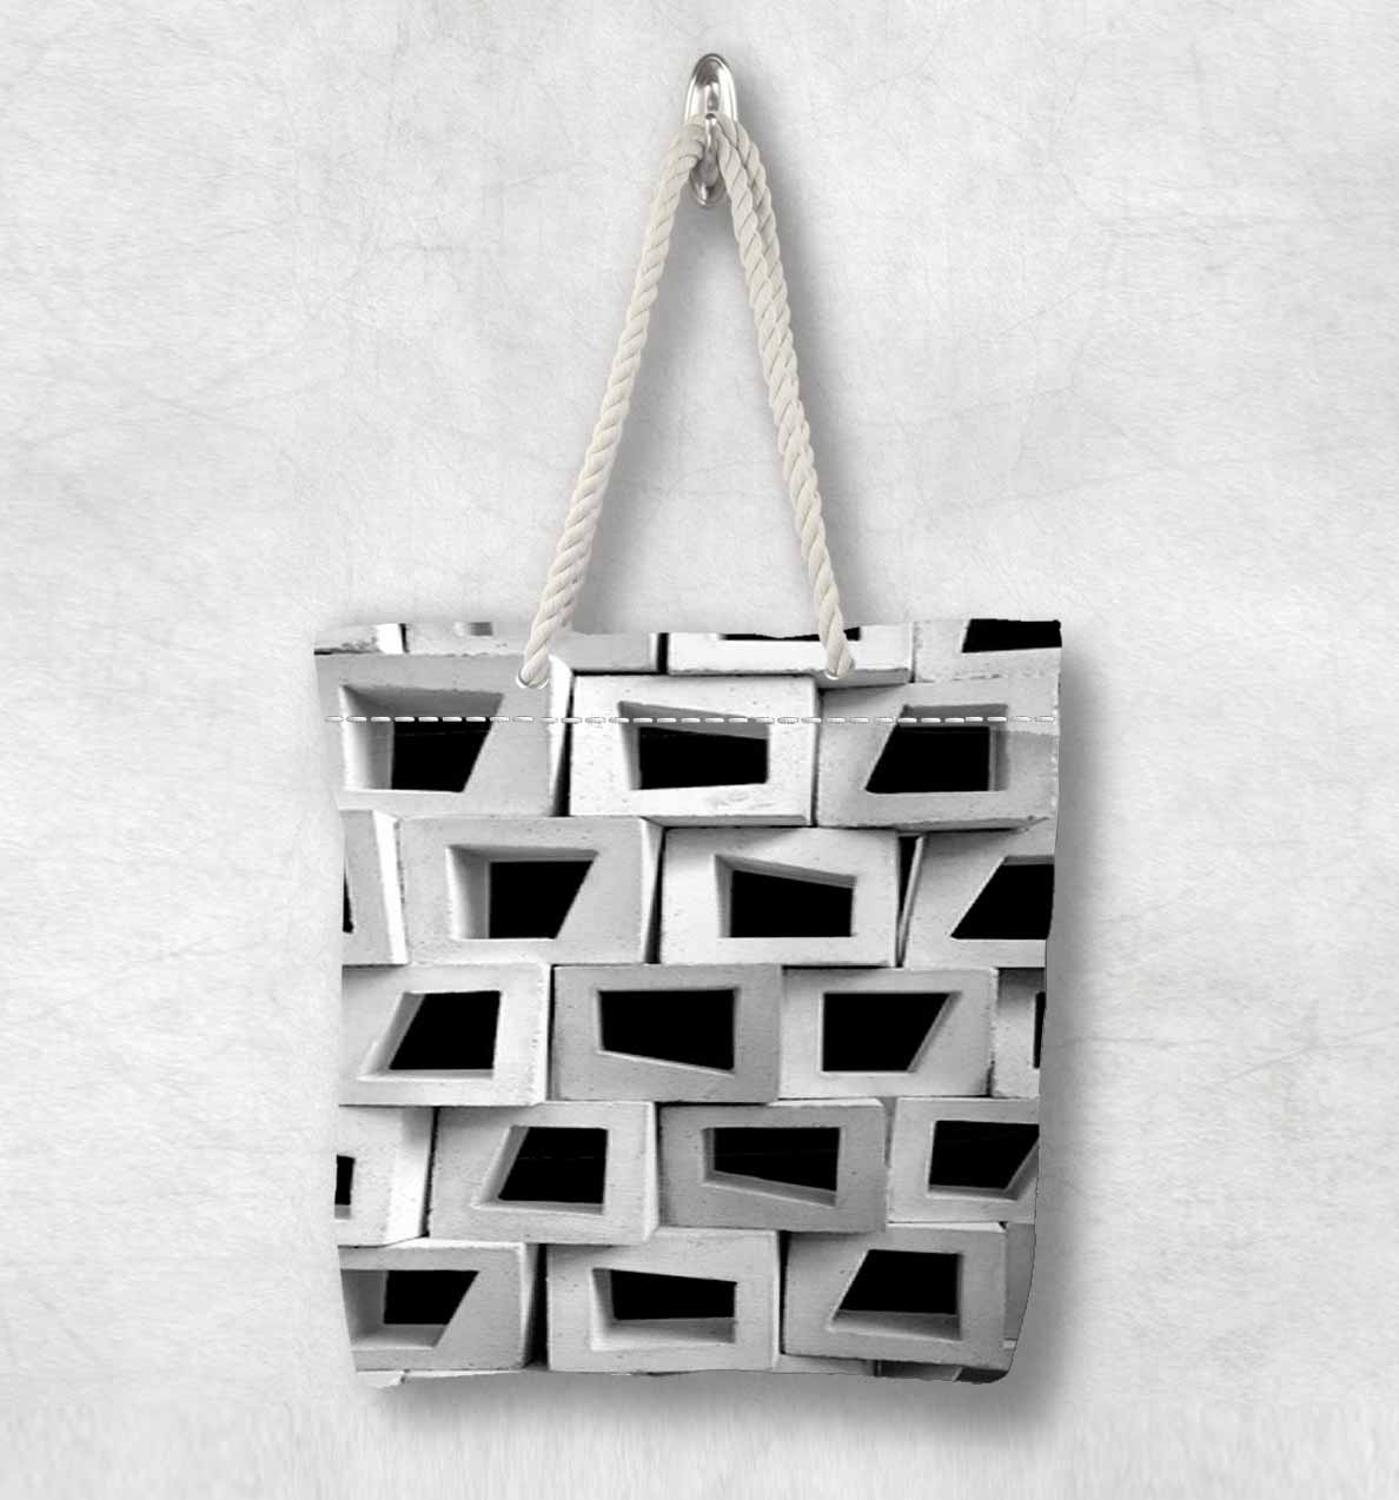 Else Black White Abstract Box Geometric New Fashion White Rope Handle Canvas Bag Cotton Canvas Zippered Tote Bag Shoulder Bag